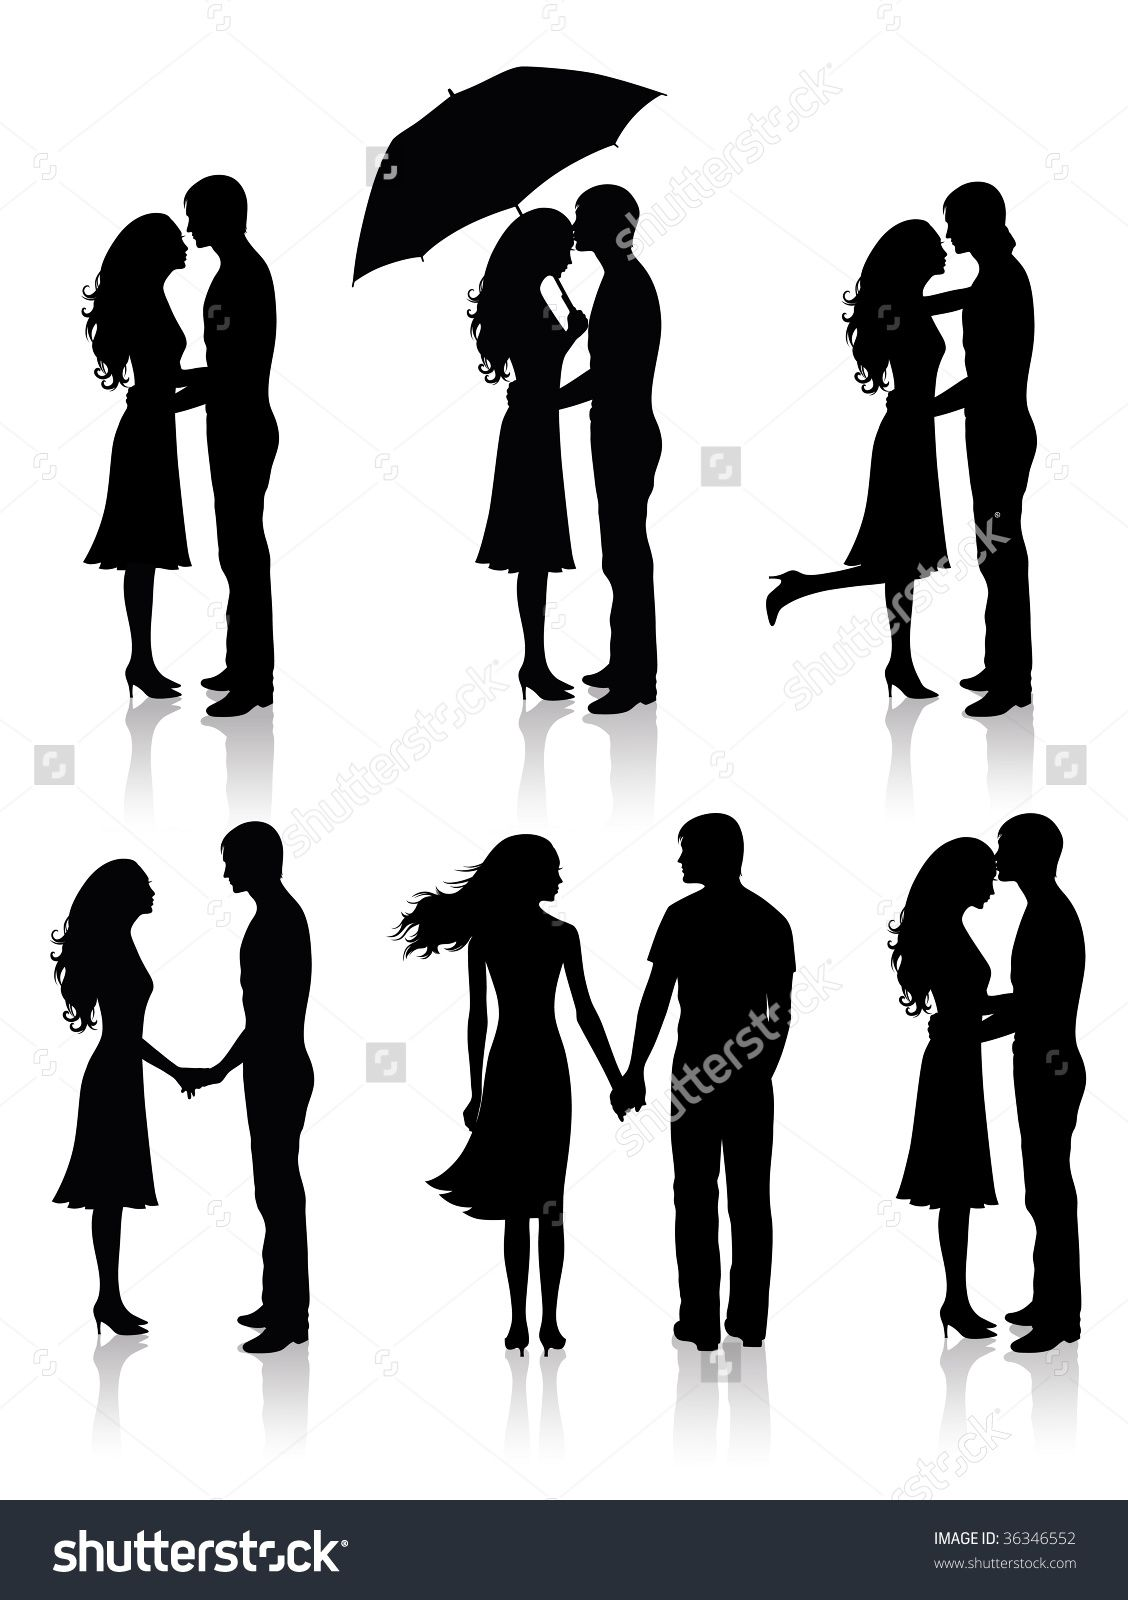 Different Silhouettes Of Couples